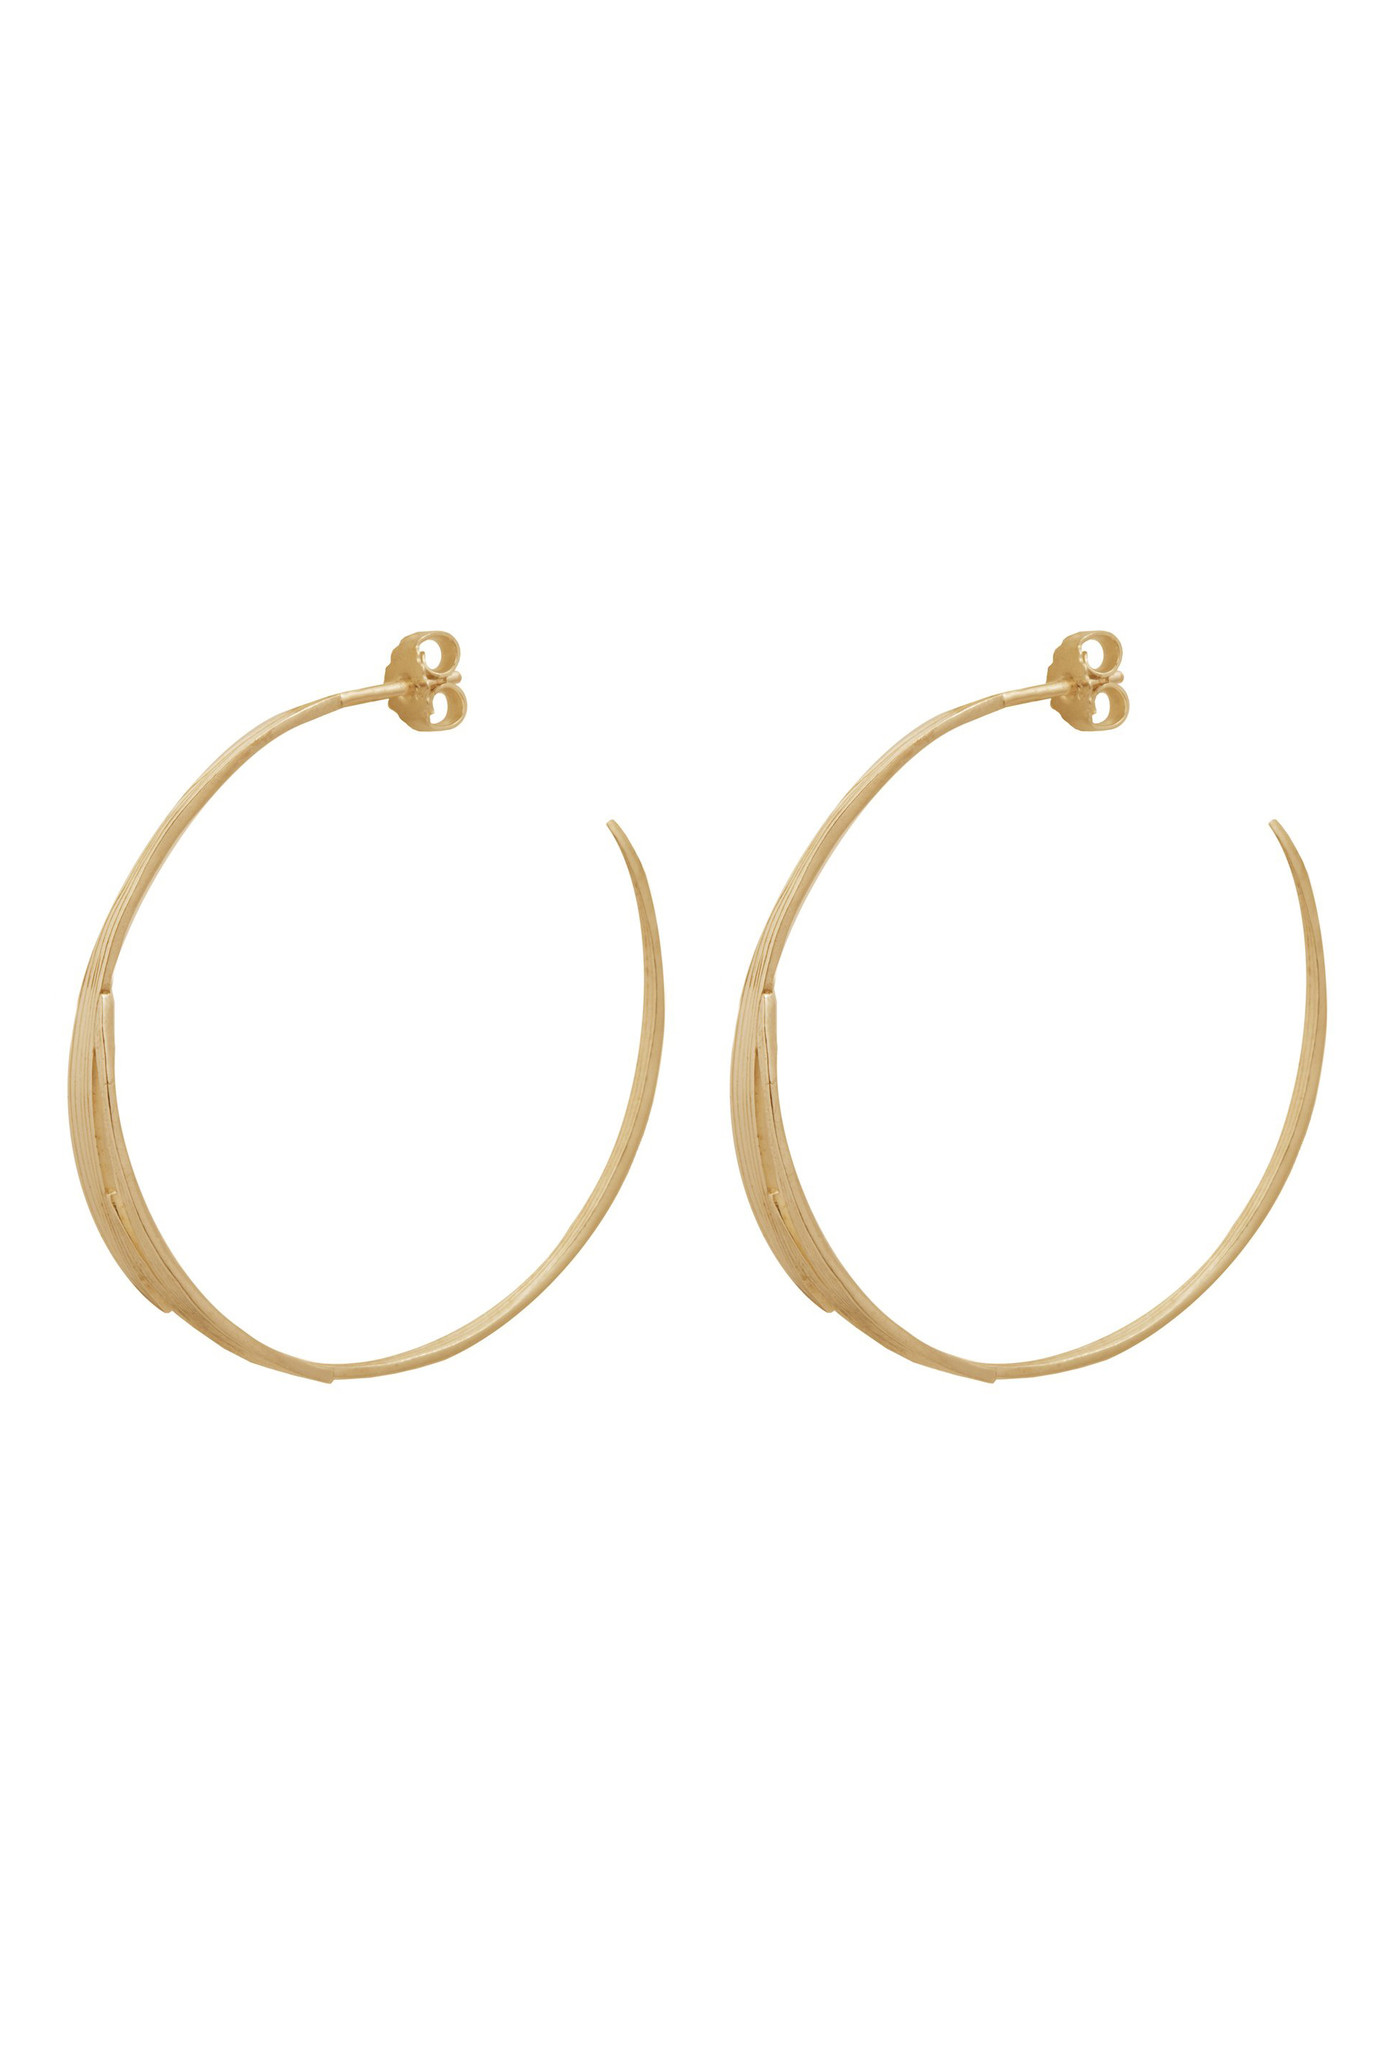 Bamboo leaves earrings Goldplated